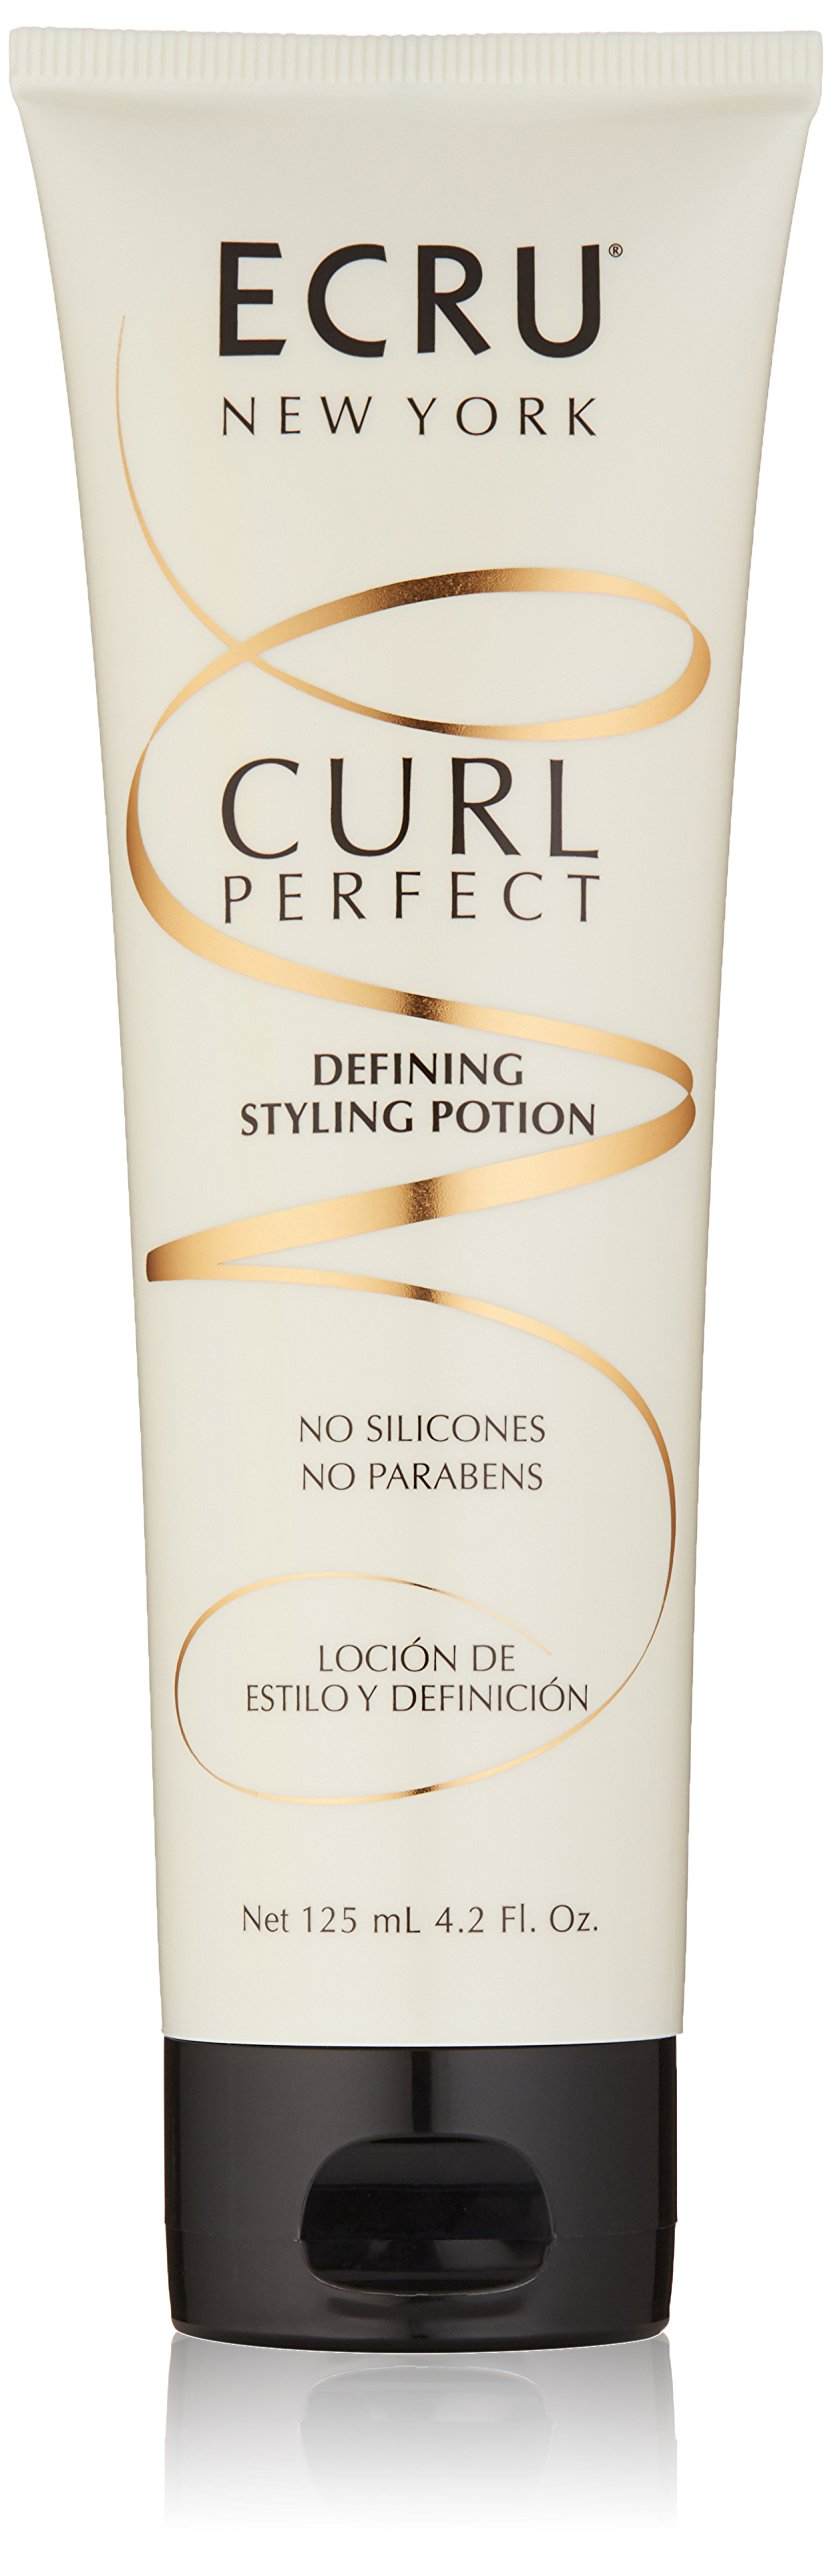 Ecru New York Curl Perfect Defining Styling Potion